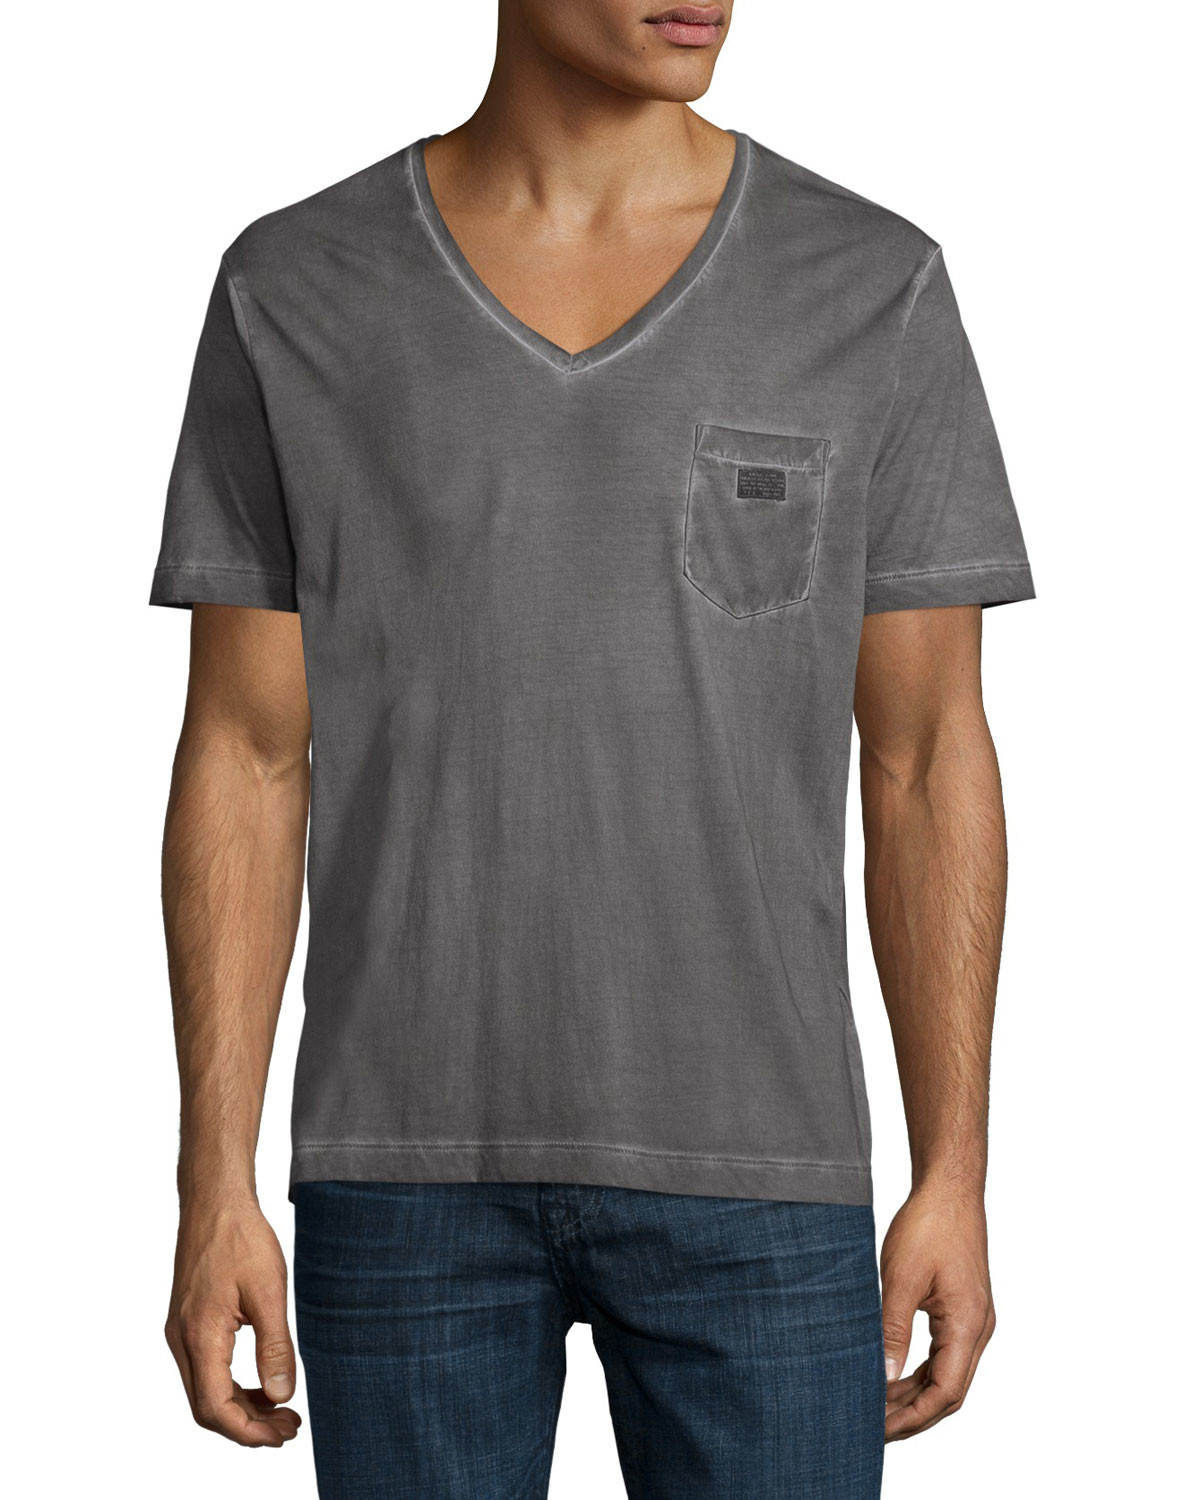 Diesel Faded V Neck Cotton Tee In Gray For Men Lyst